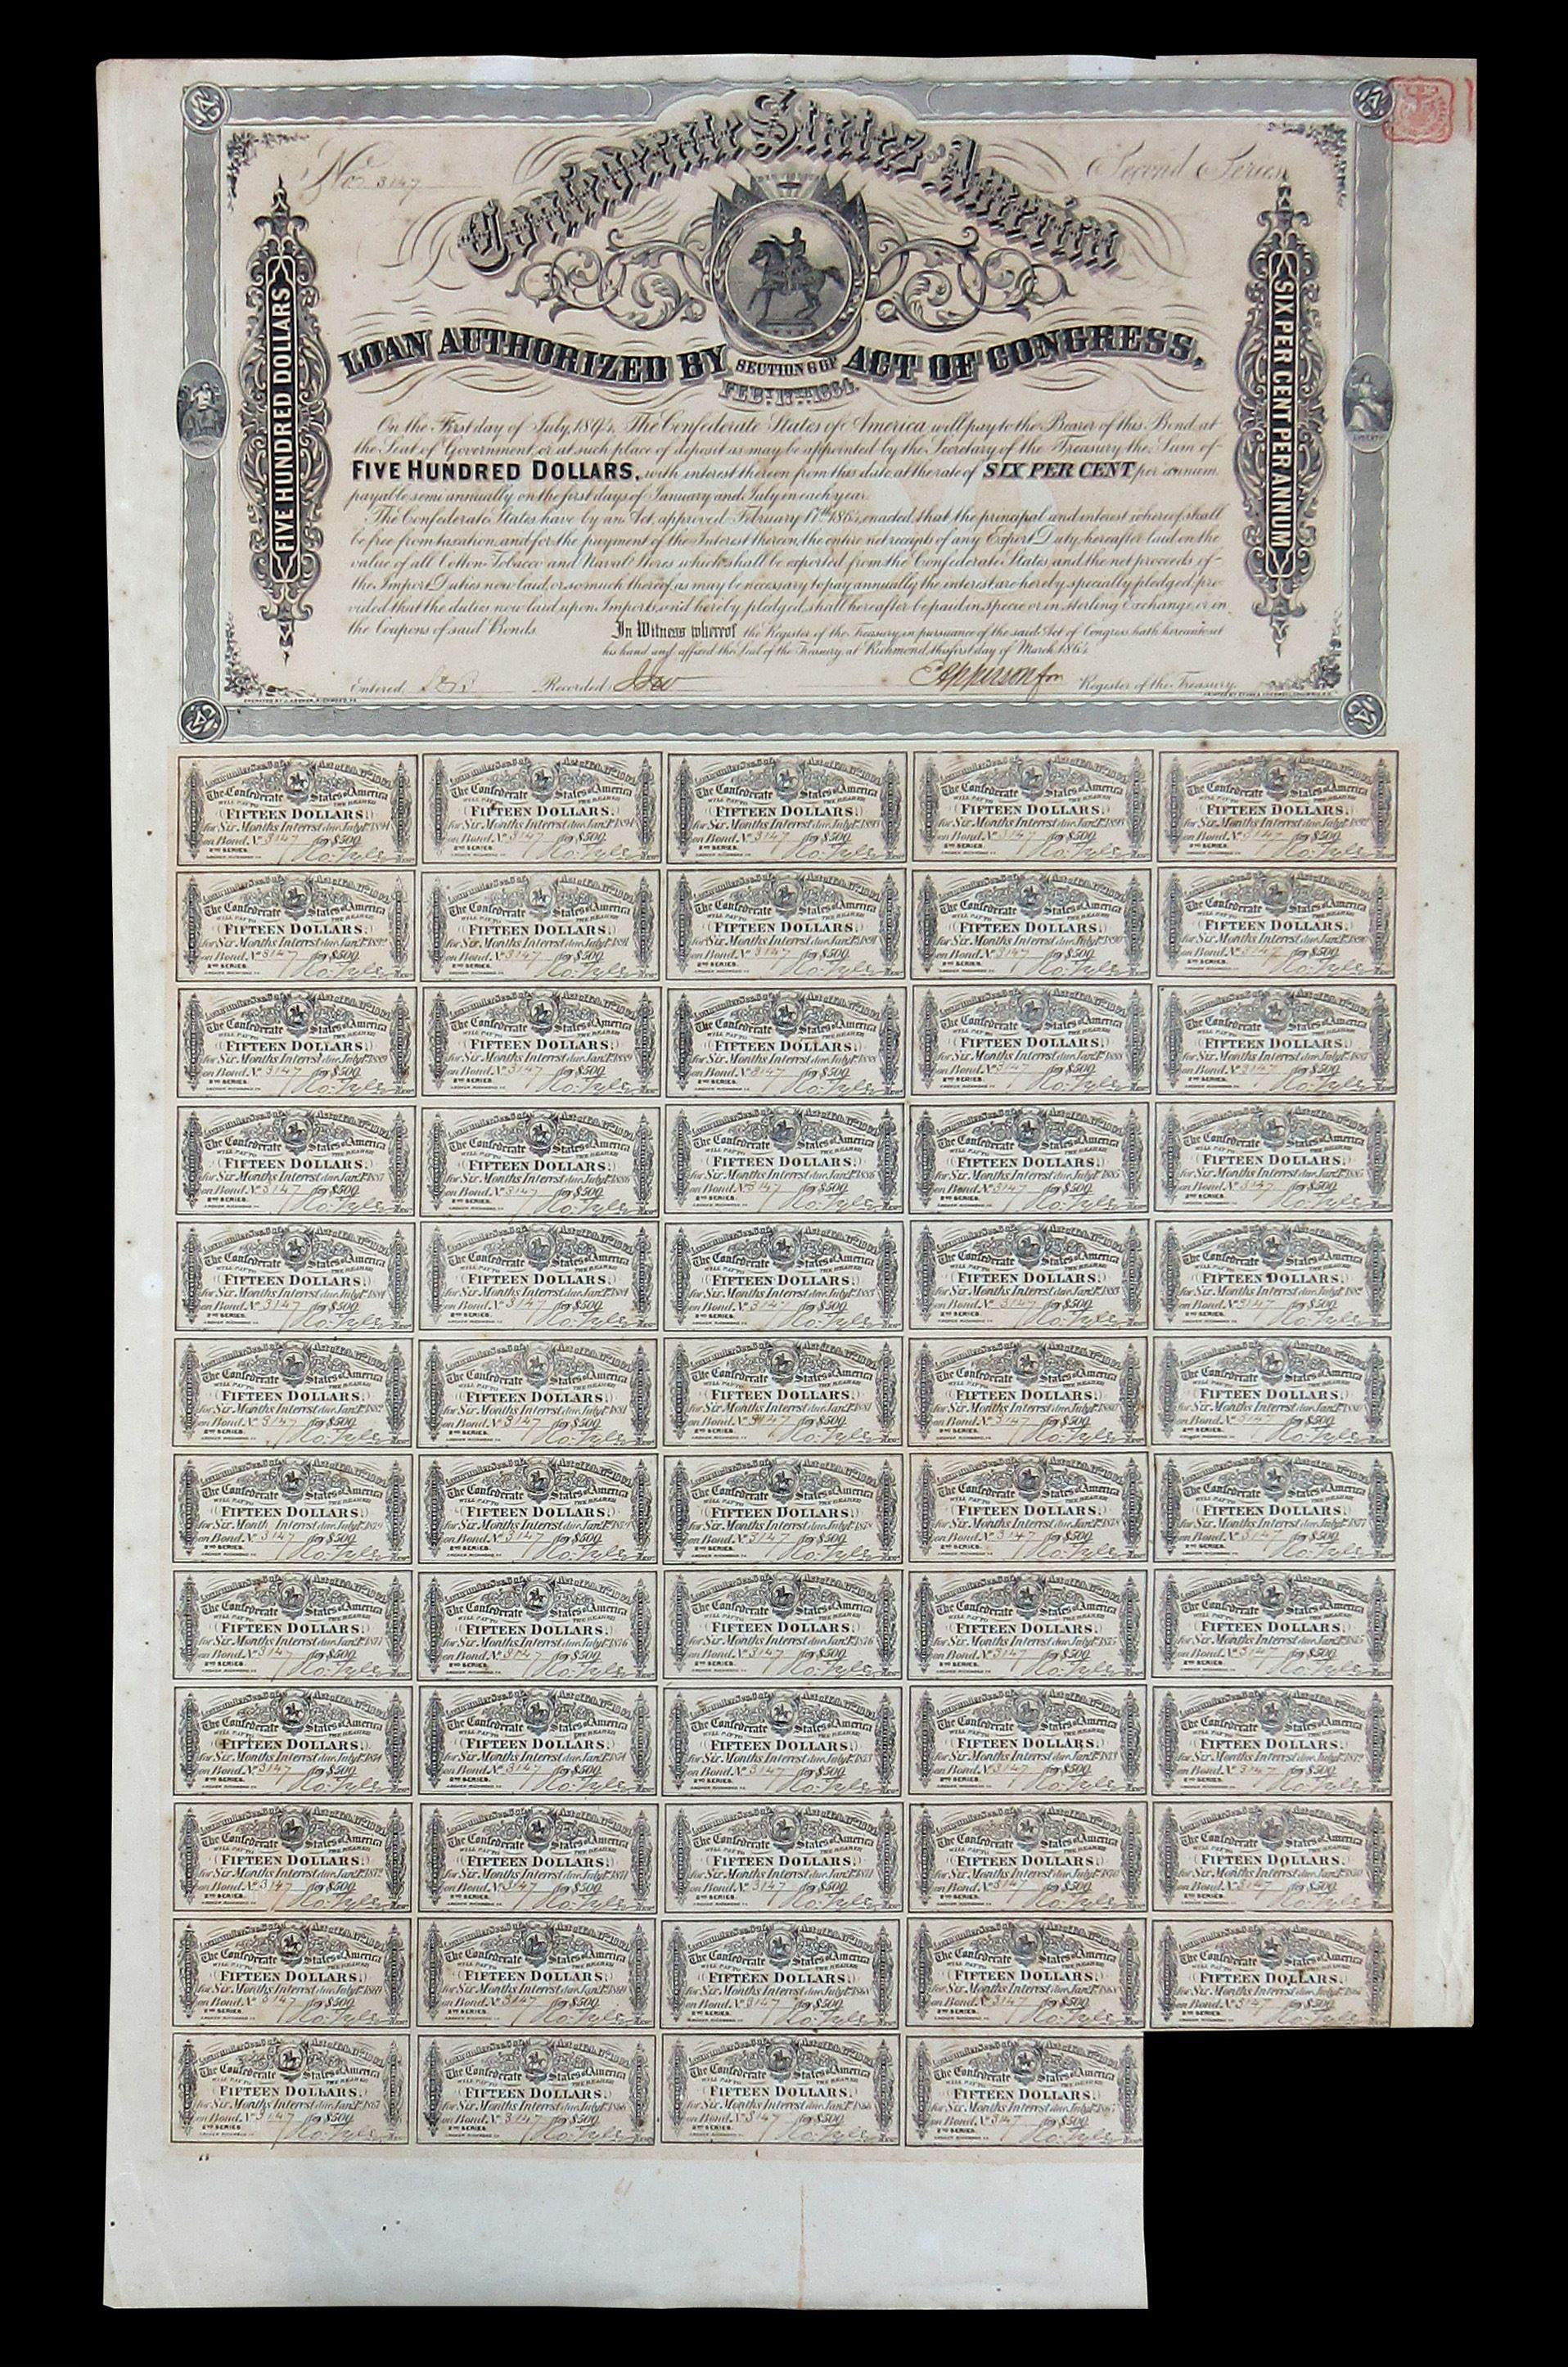 Confederate States of America 30-Year Loan Bond Issued in 1864